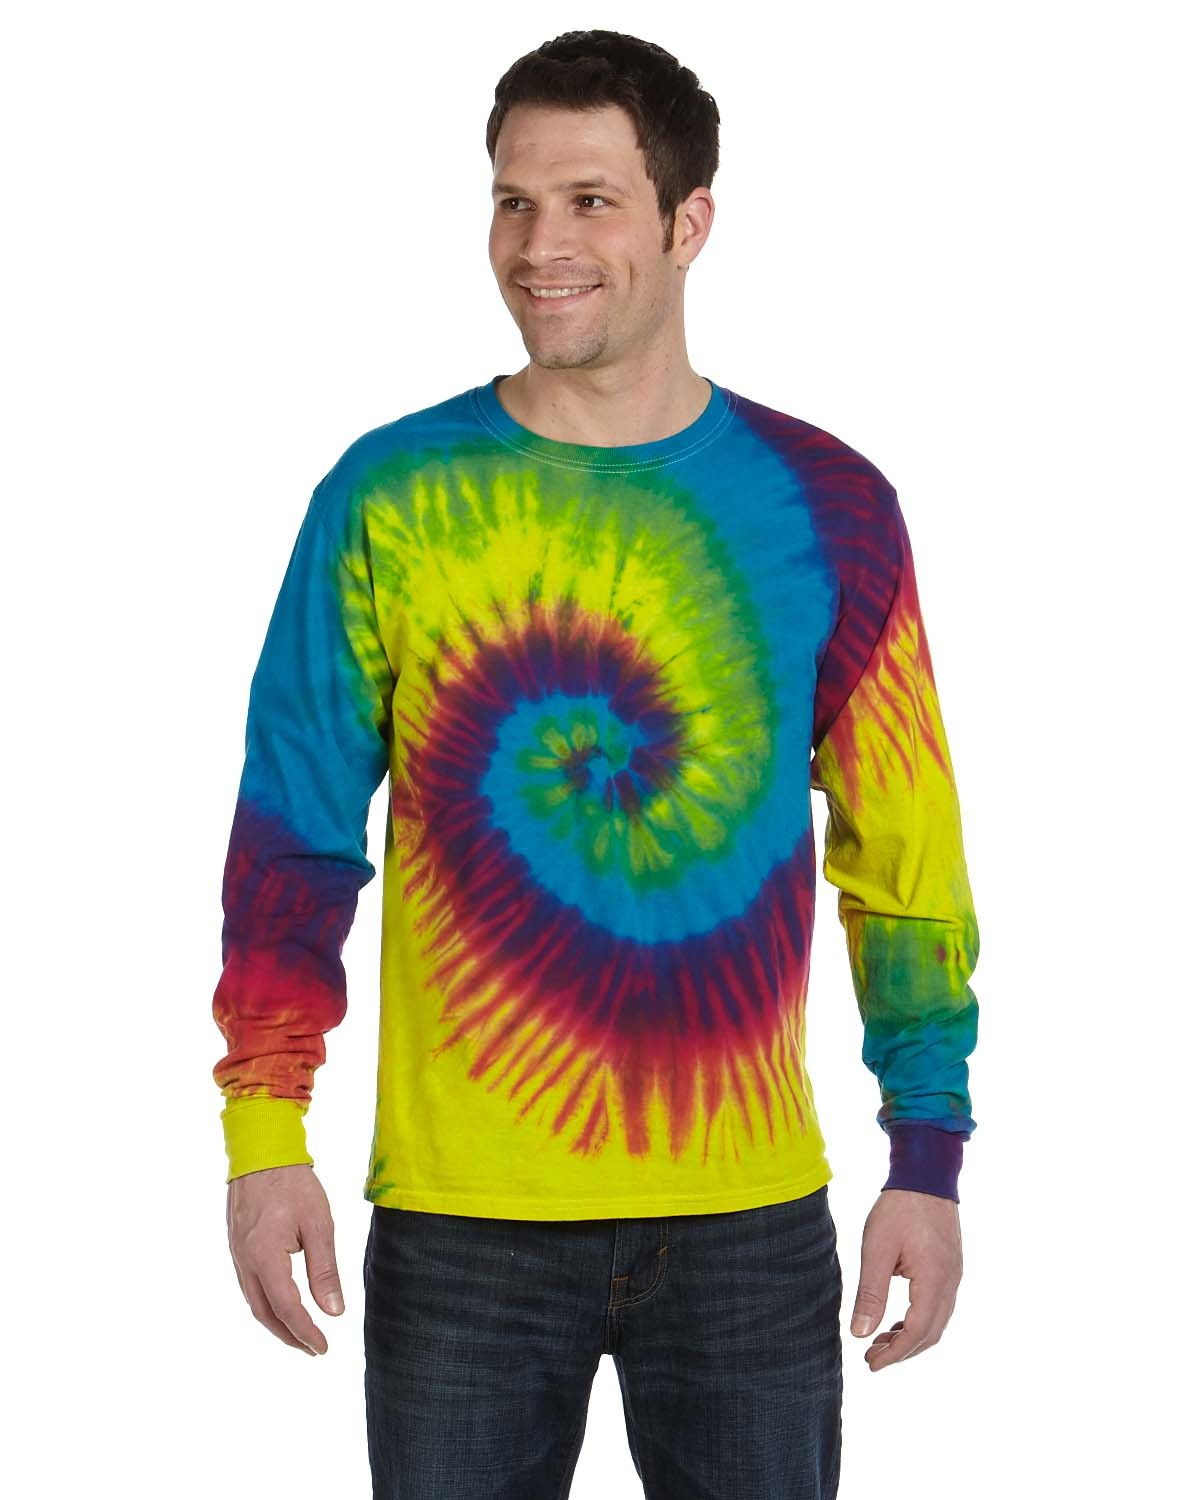 CD2000 Tie-Dye REACTIVE RAINBOW